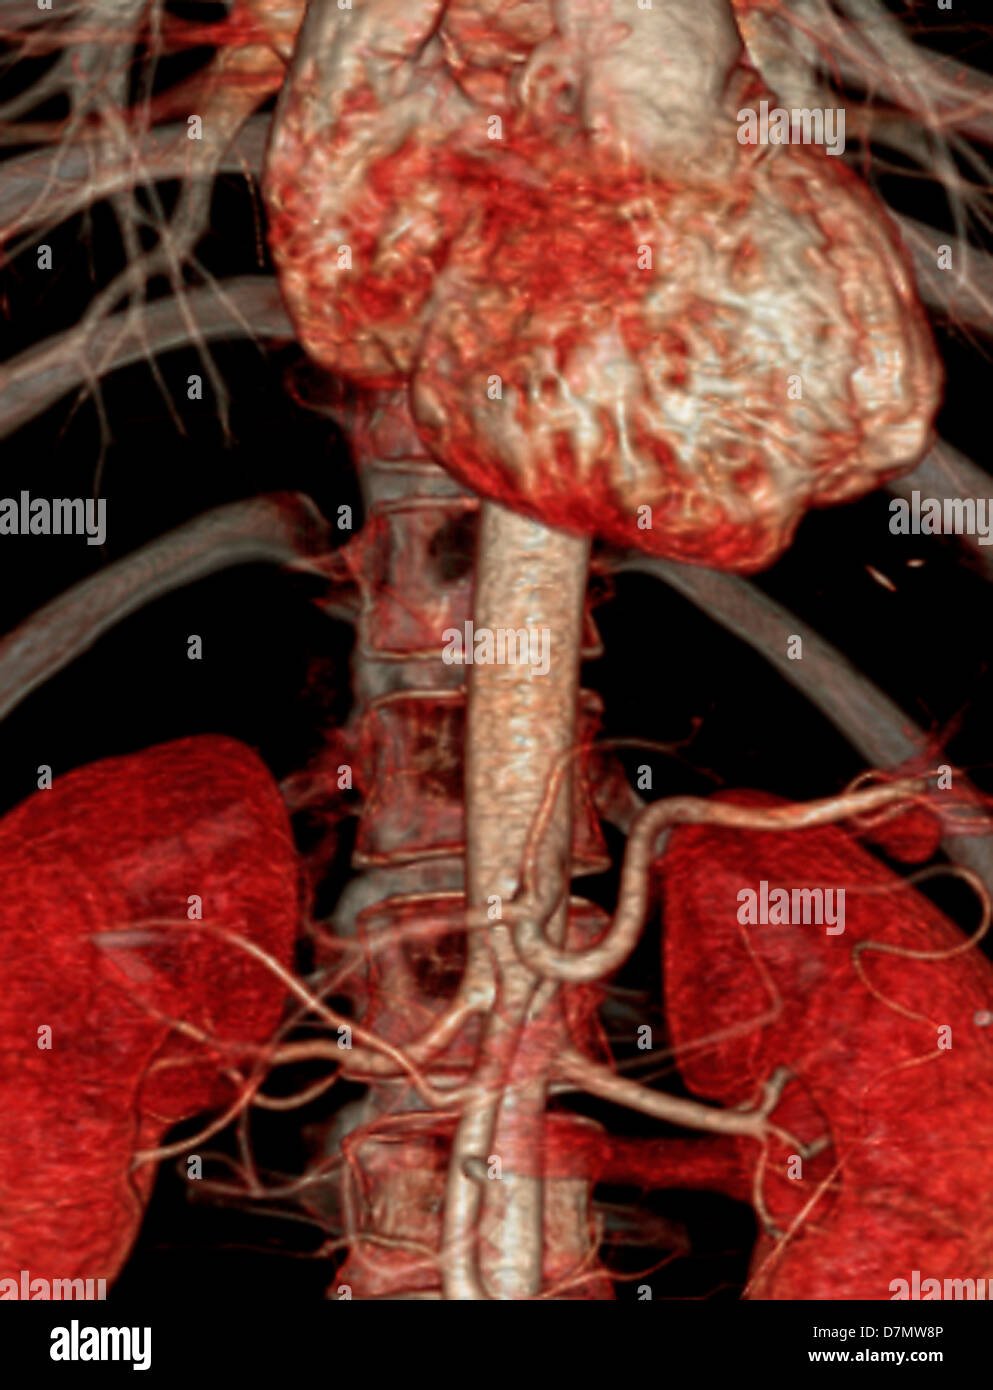 Bauchaorta, 3D CT-scan Stockfoto, Bild: 56392582 - Alamy